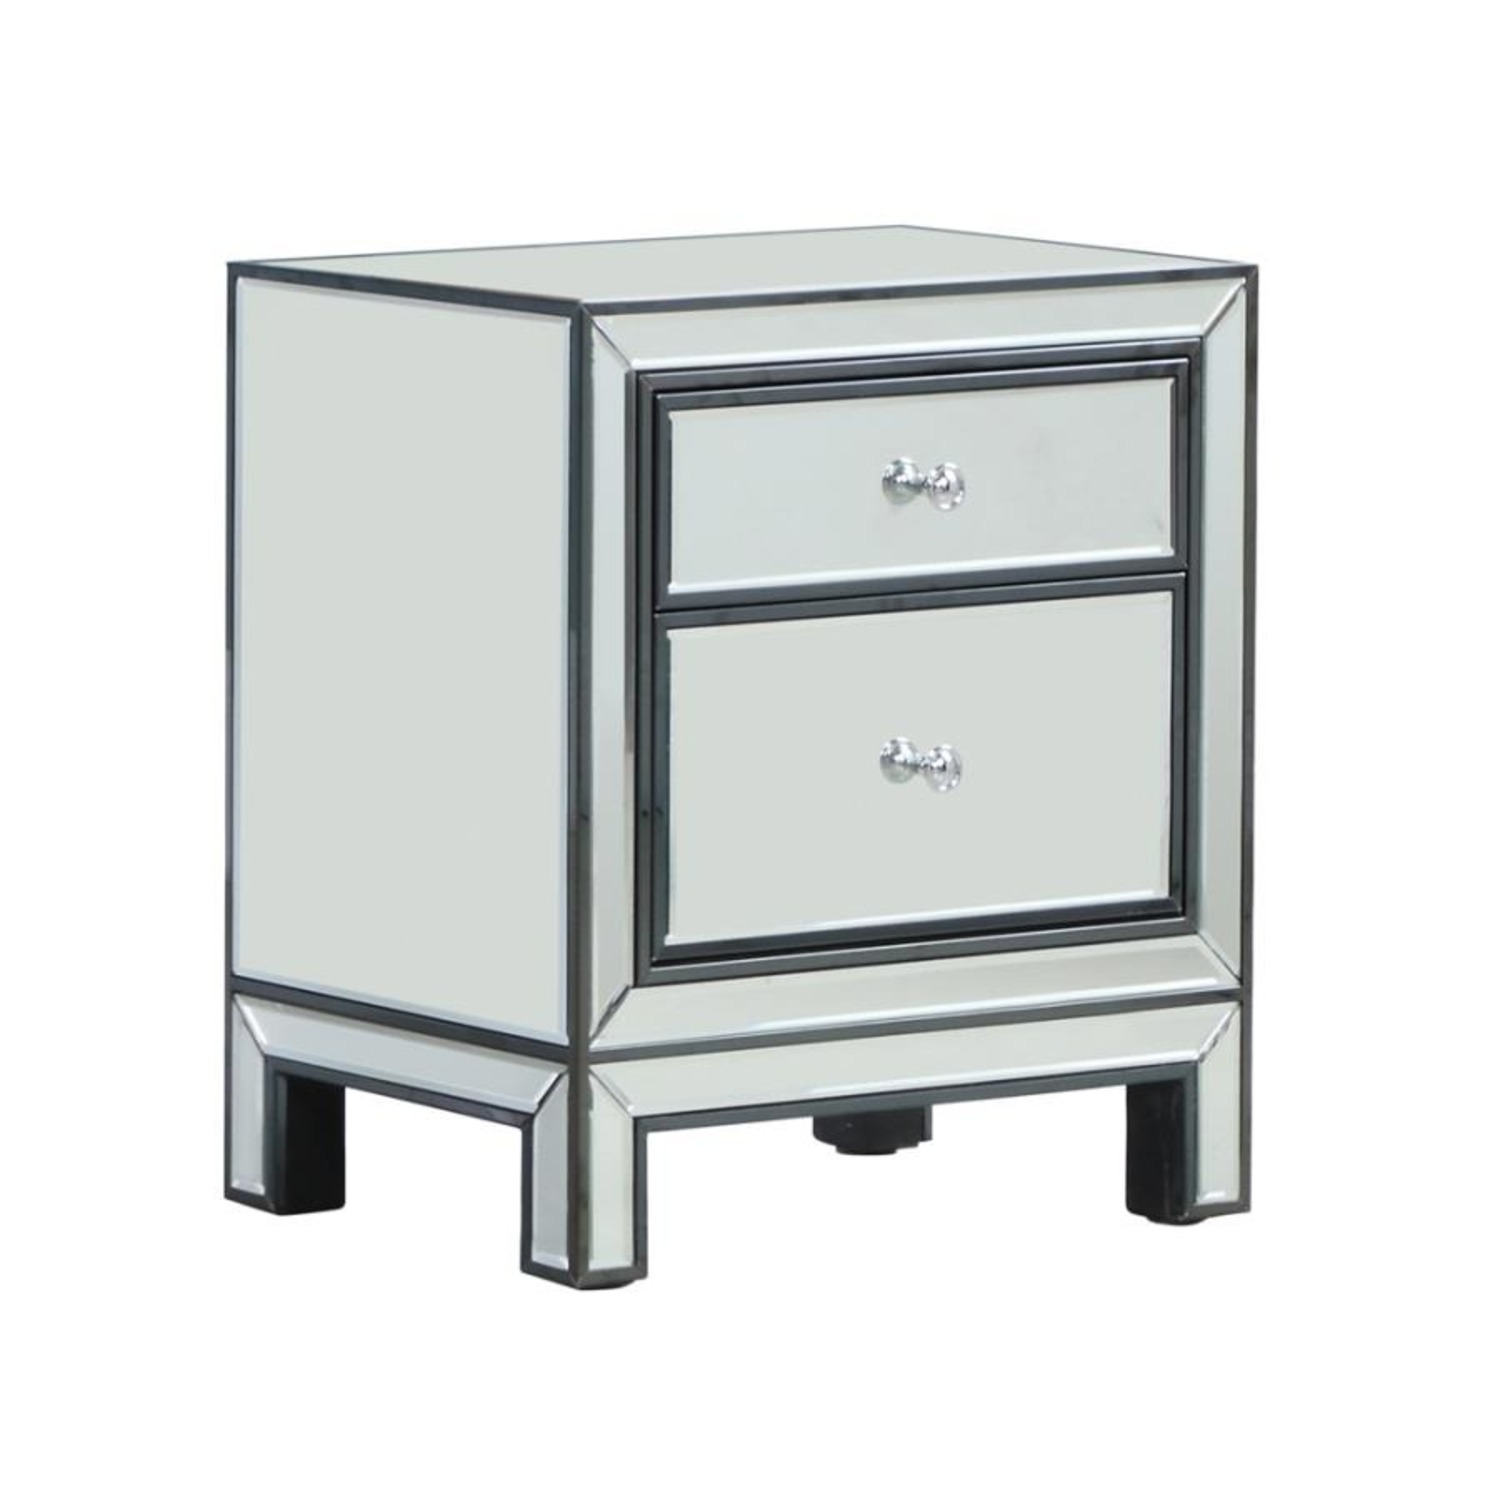 End Table W/ Mirrored Drawers In Silver Finish - image-0